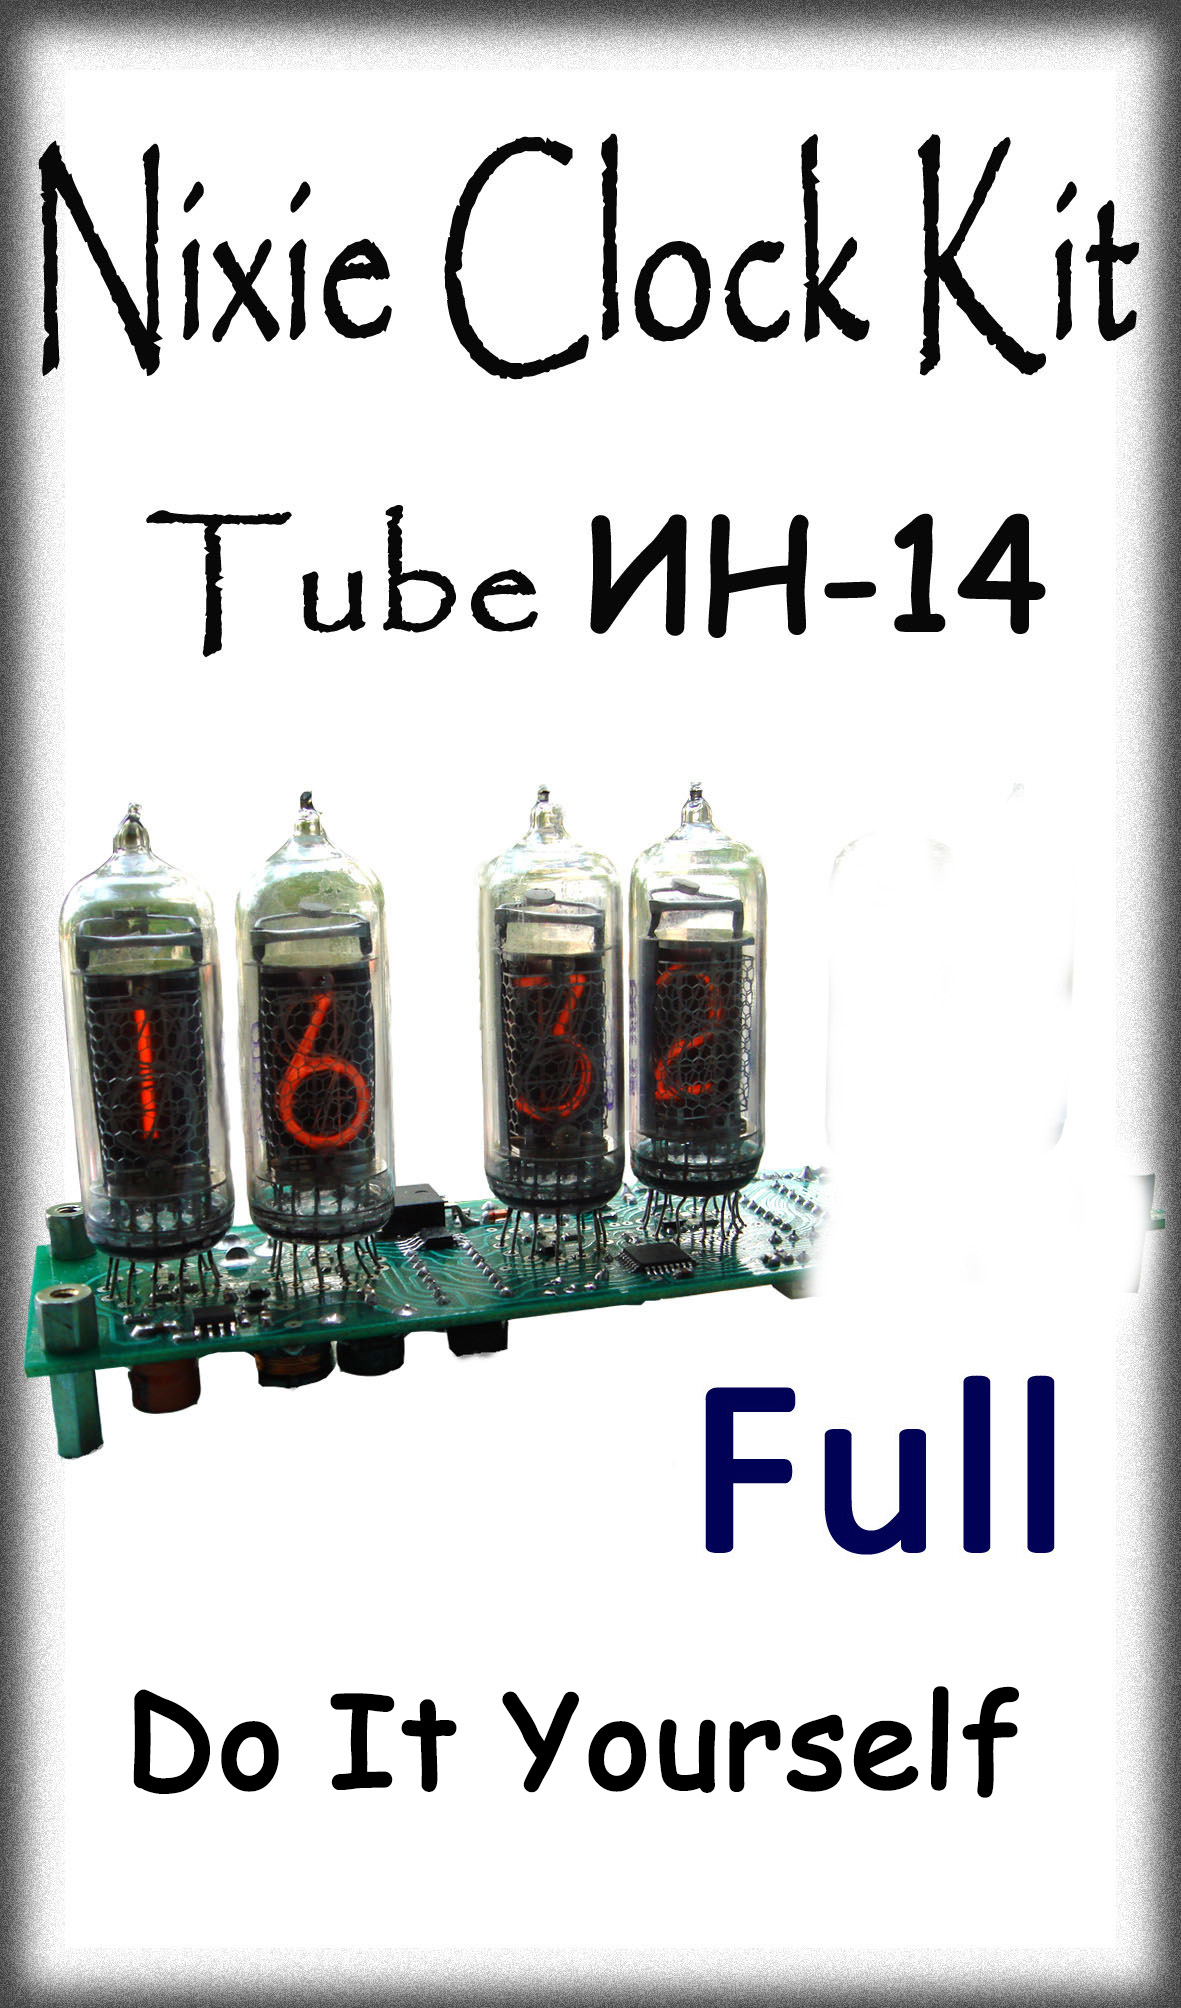 Nixie Clock IN-14 4-Tube Full